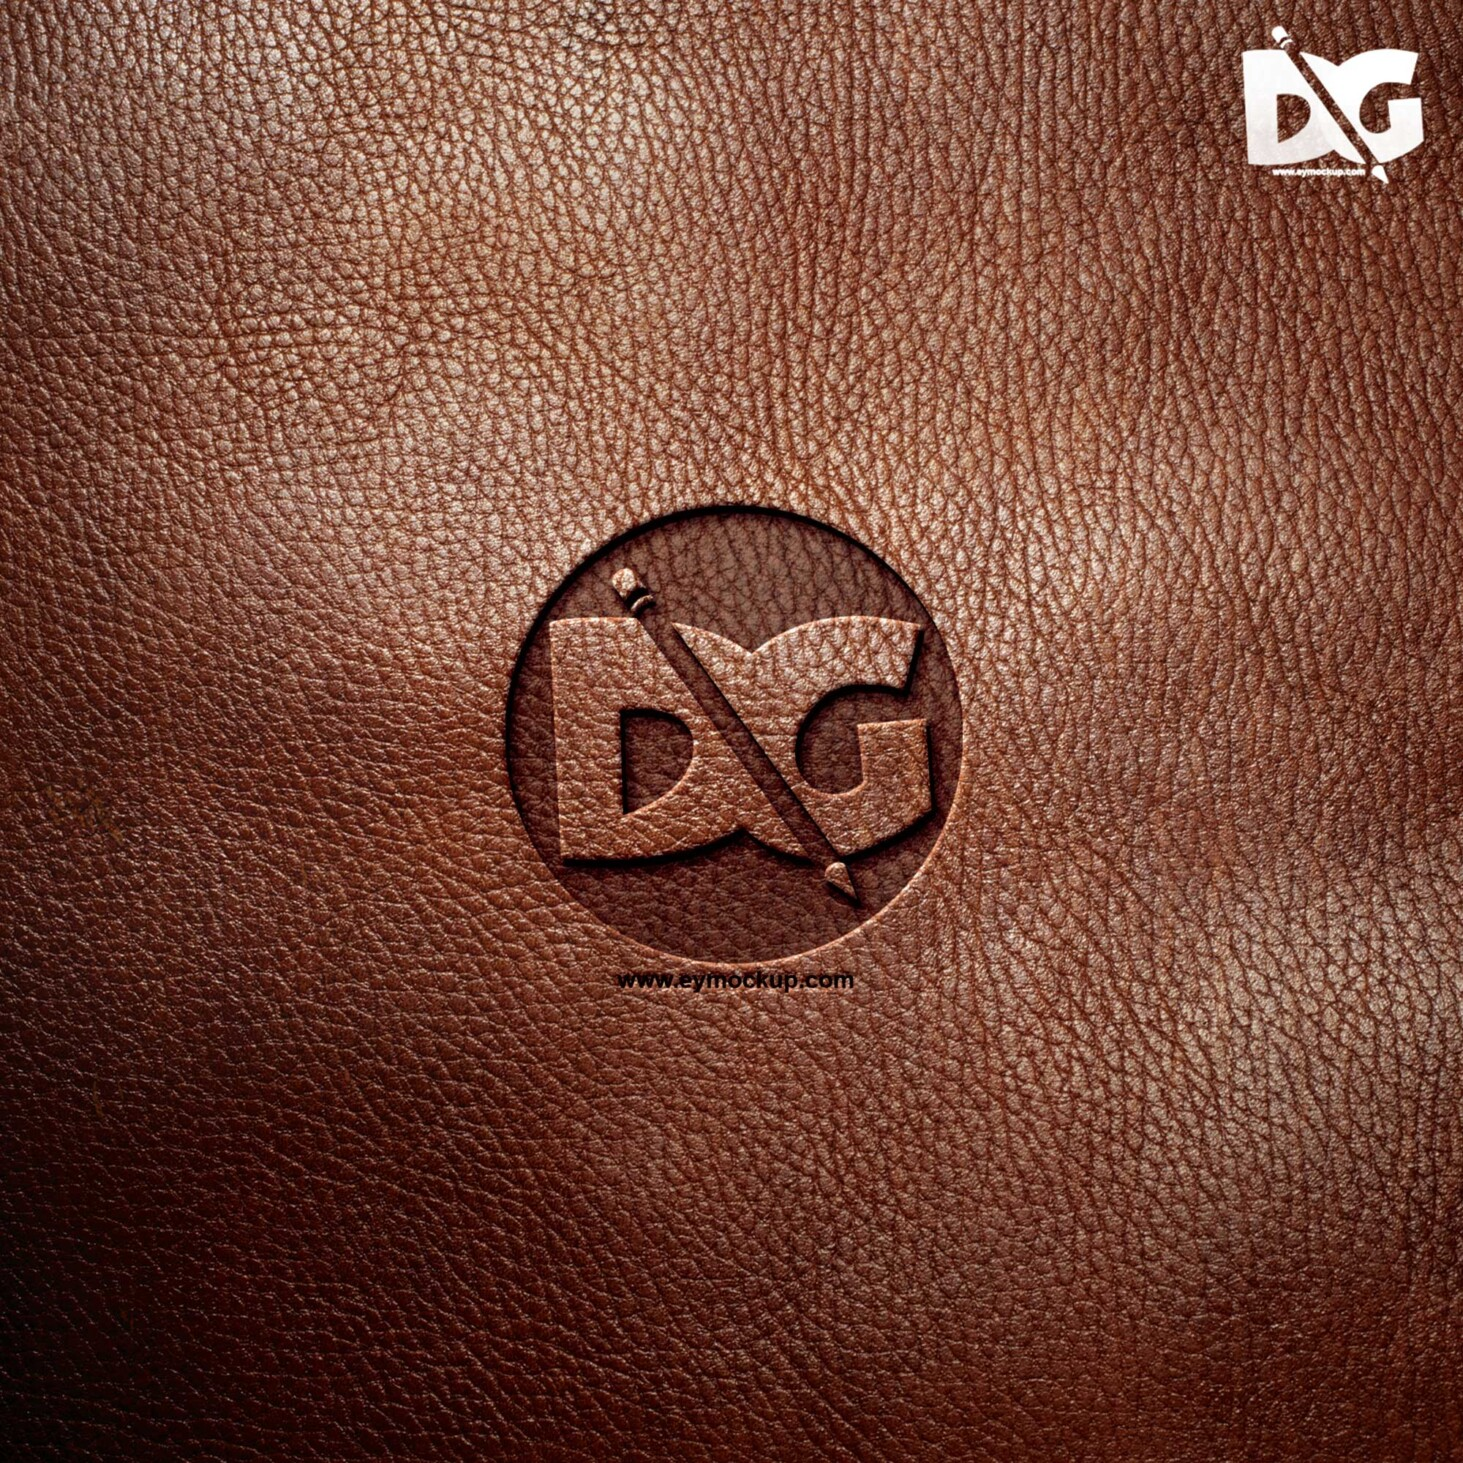 Leather Logo Mockup.